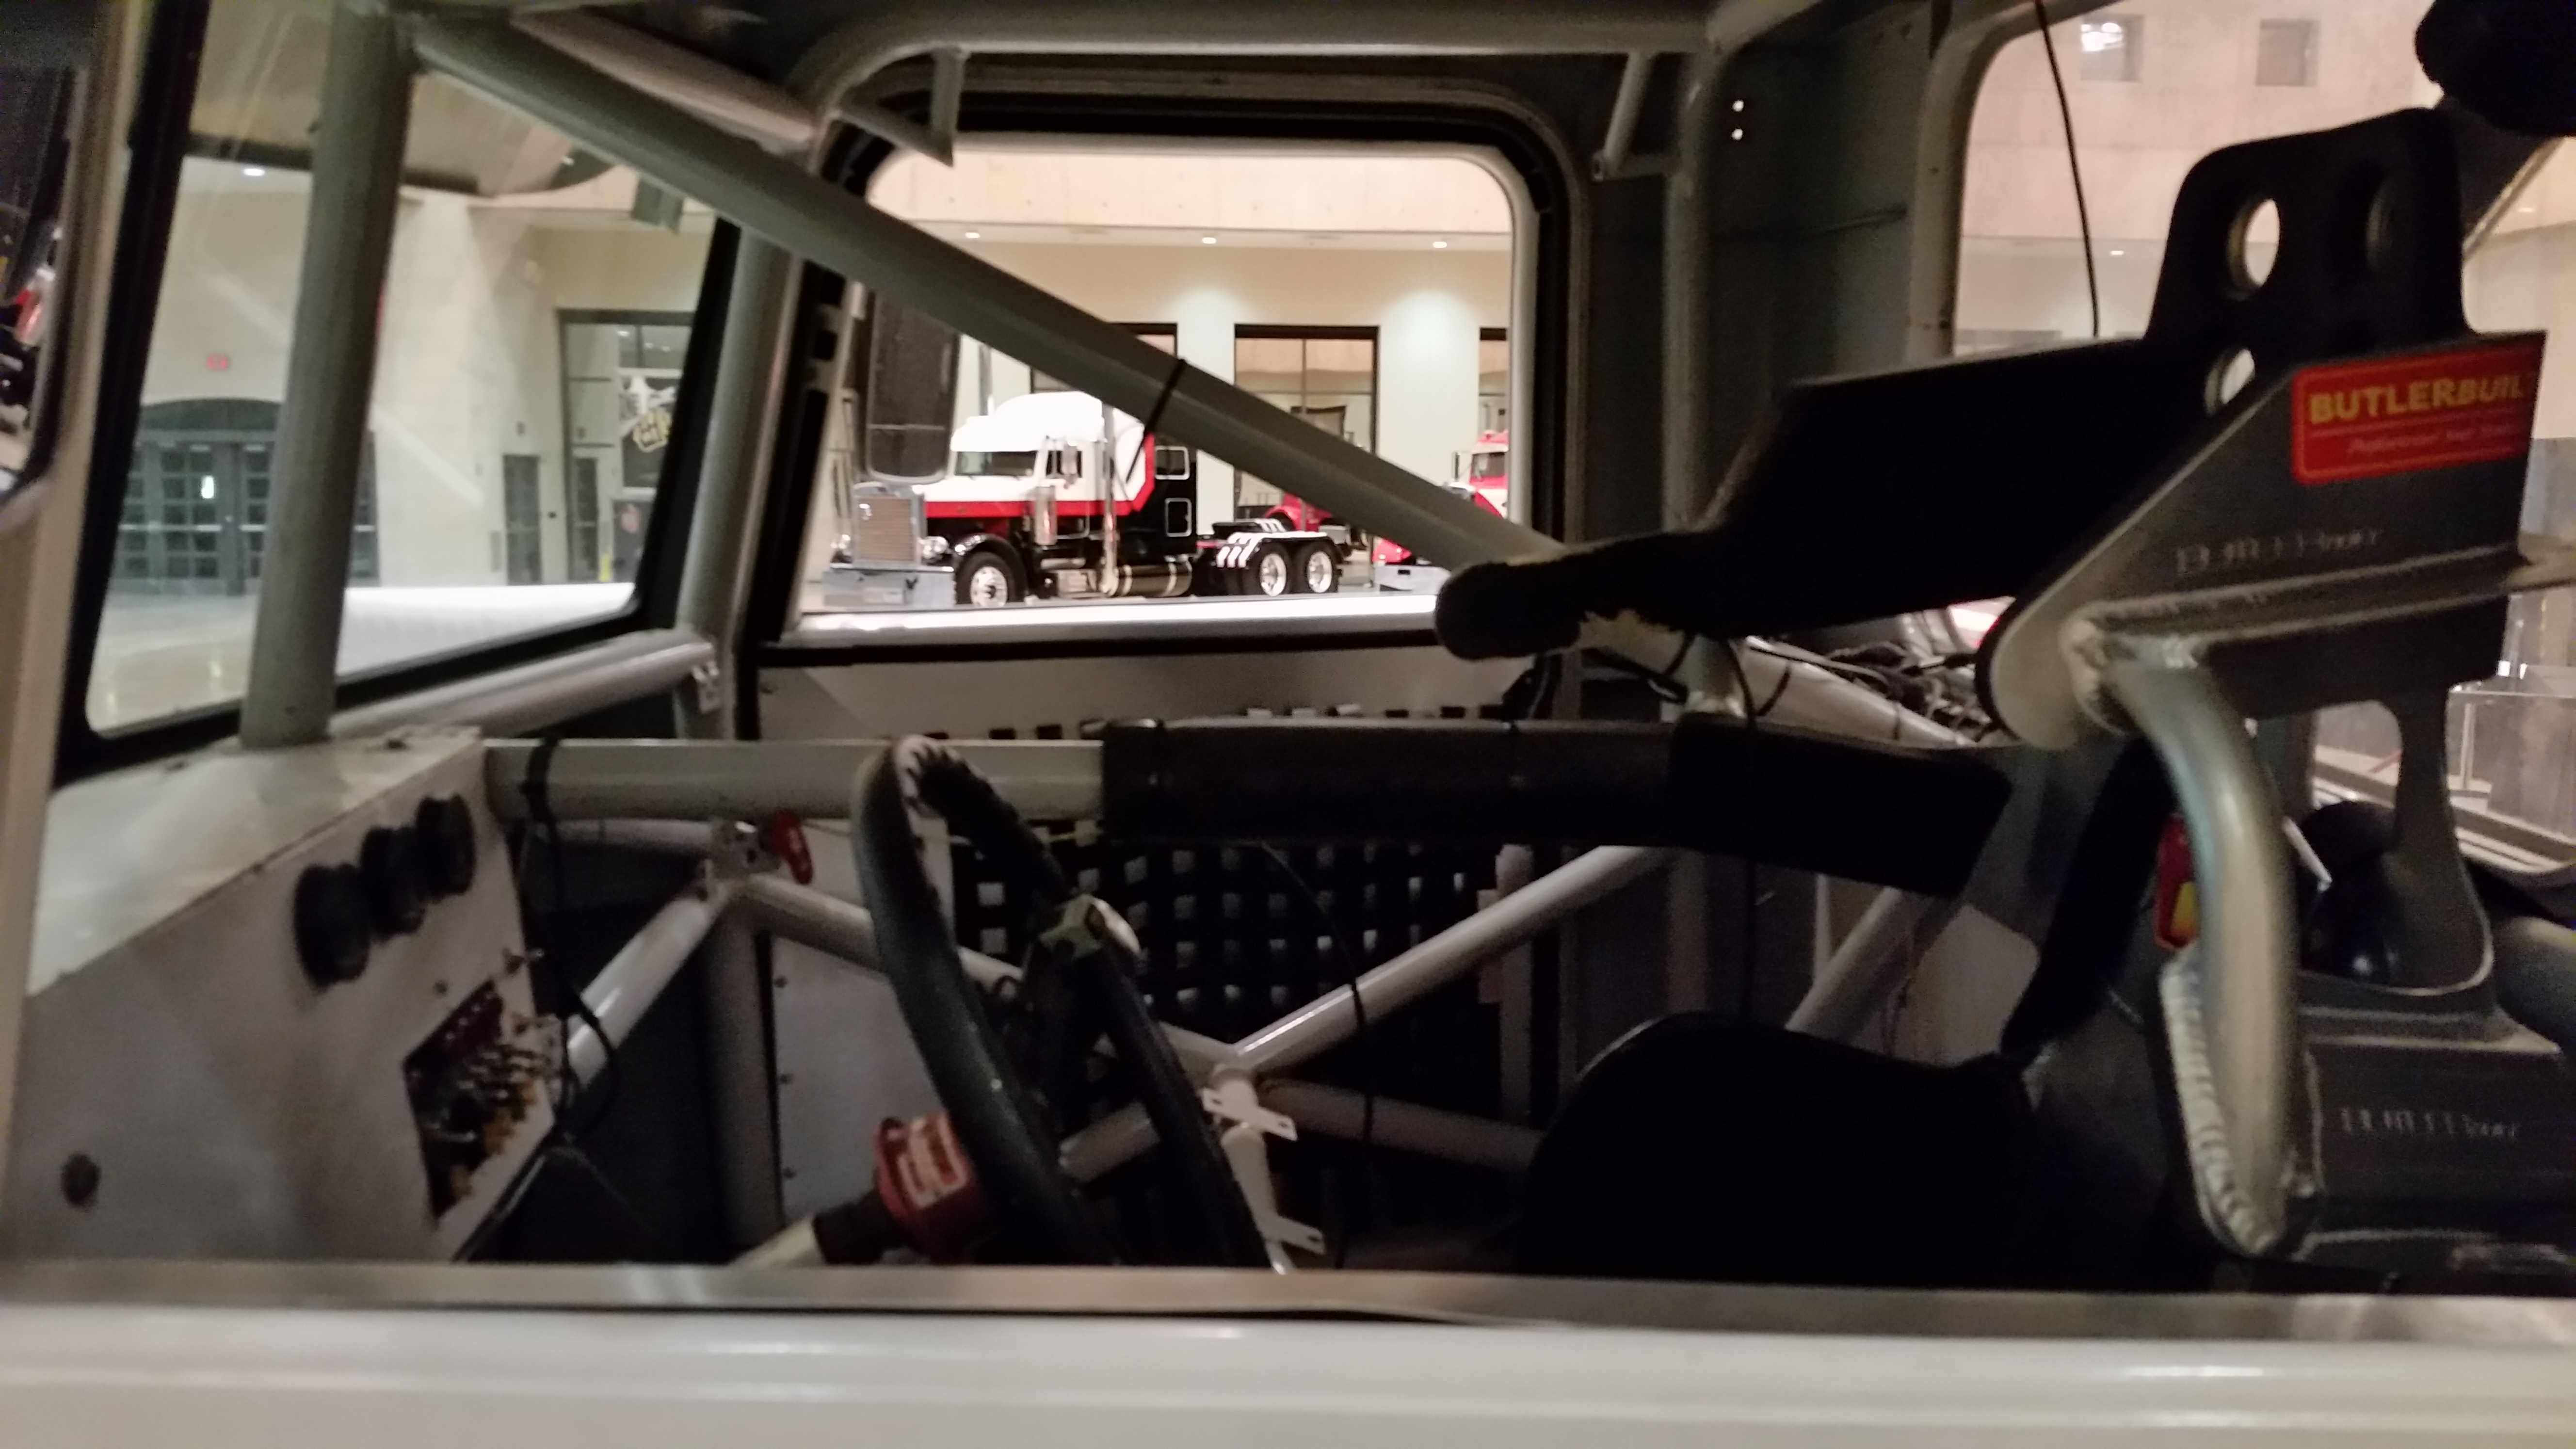 Inside cab view of racing semi truck